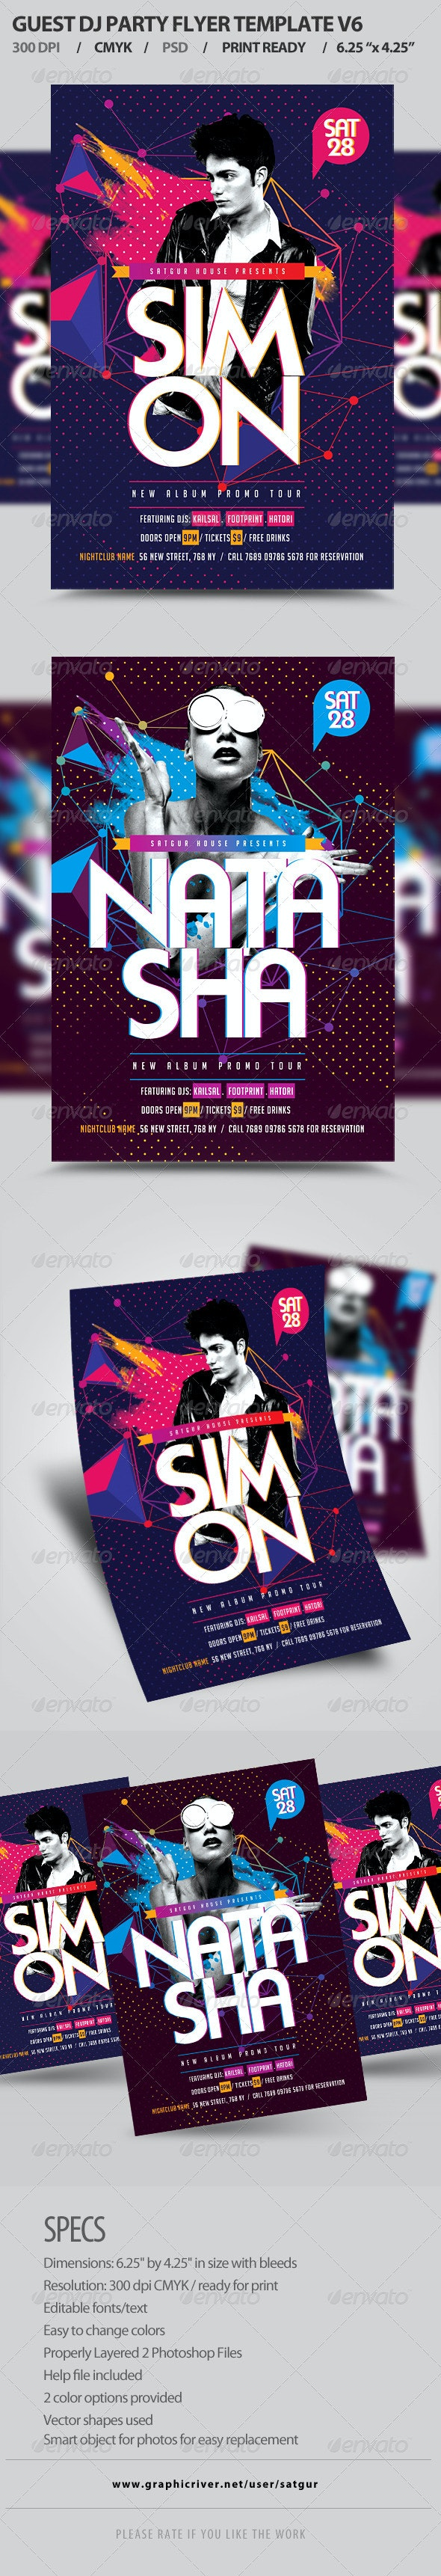 Guest DJ Party Flyer Template PSD V6 - Clubs & Parties Events